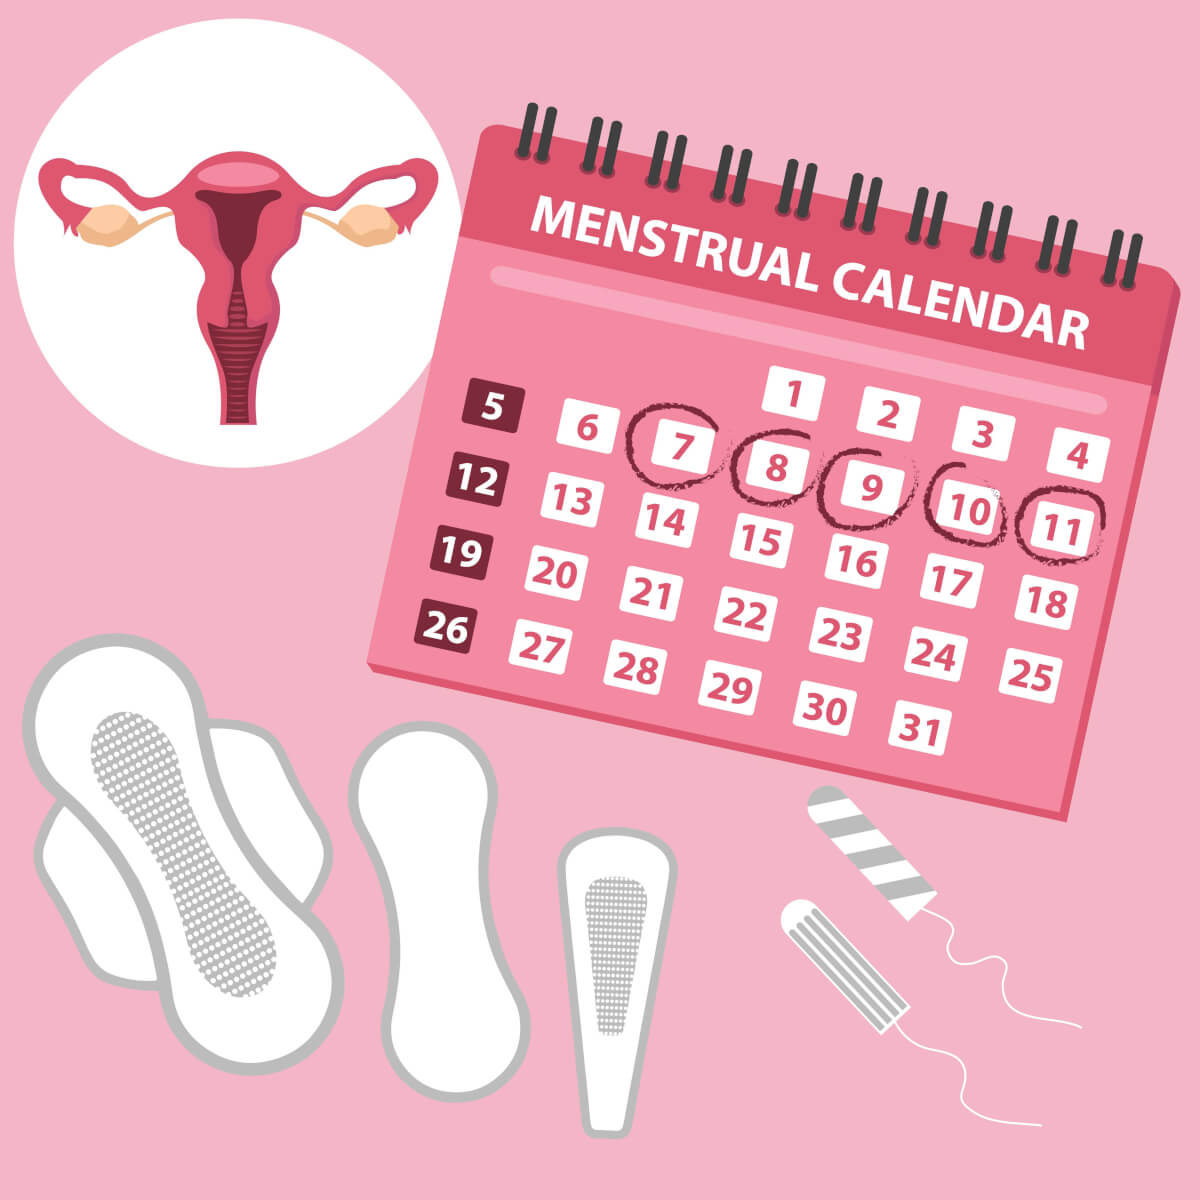 Why Should We Care To Discuss About Menstrual Hygiene? - Babygogo